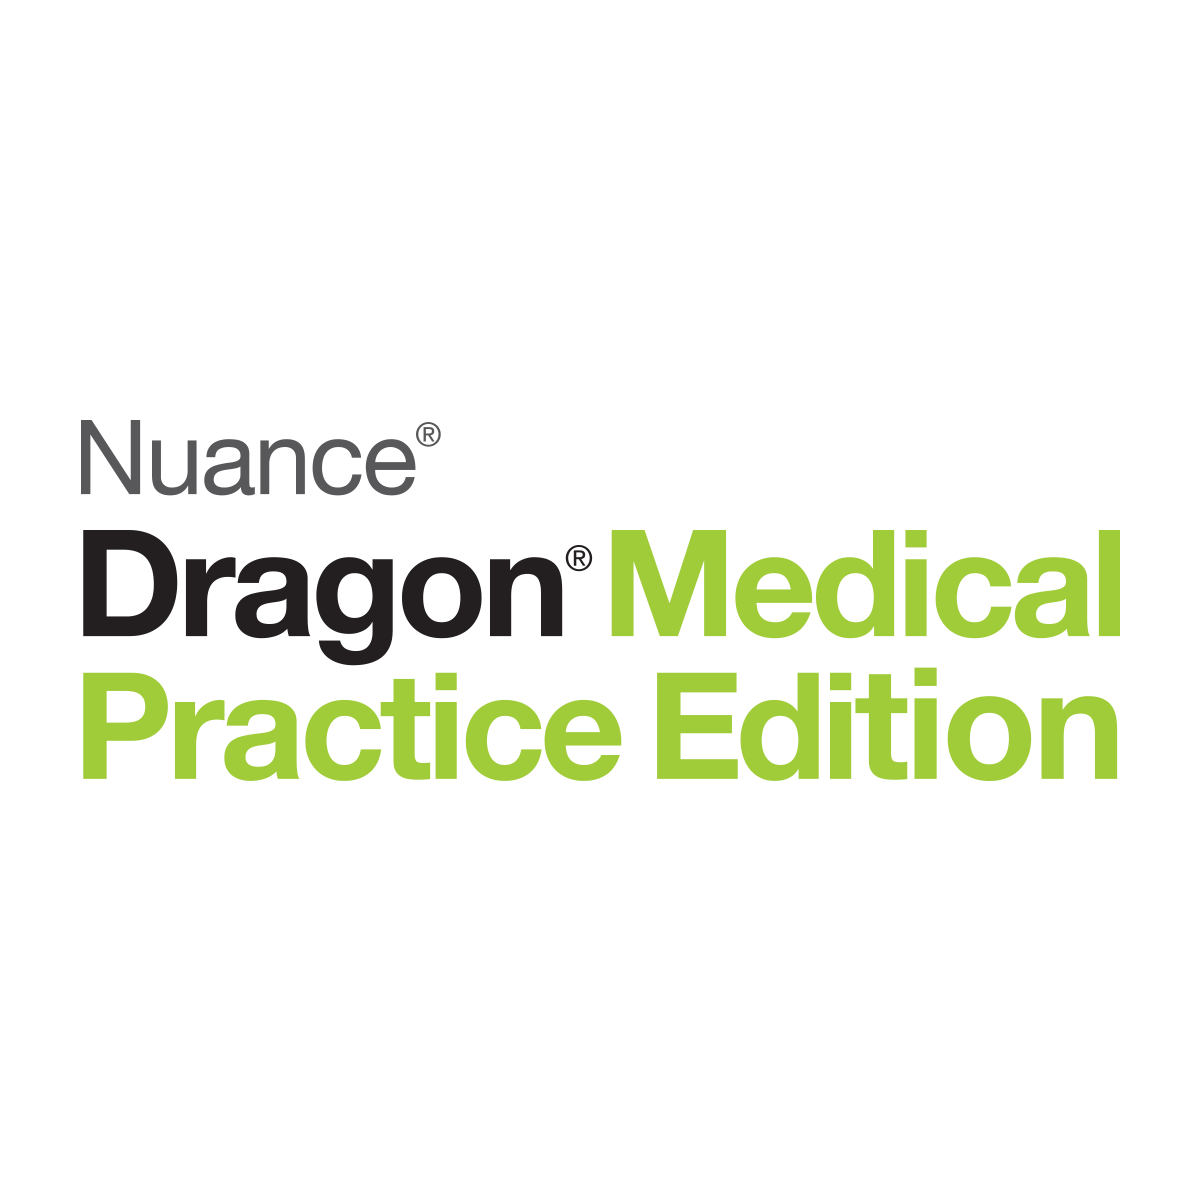 NUA-ROY-A789F-RC8-4.0 DRAGON MEDICAL PRACTICE EDITION 4 FRENCH UPGRADE FROM DMPE 12, 2, OR HIGHER